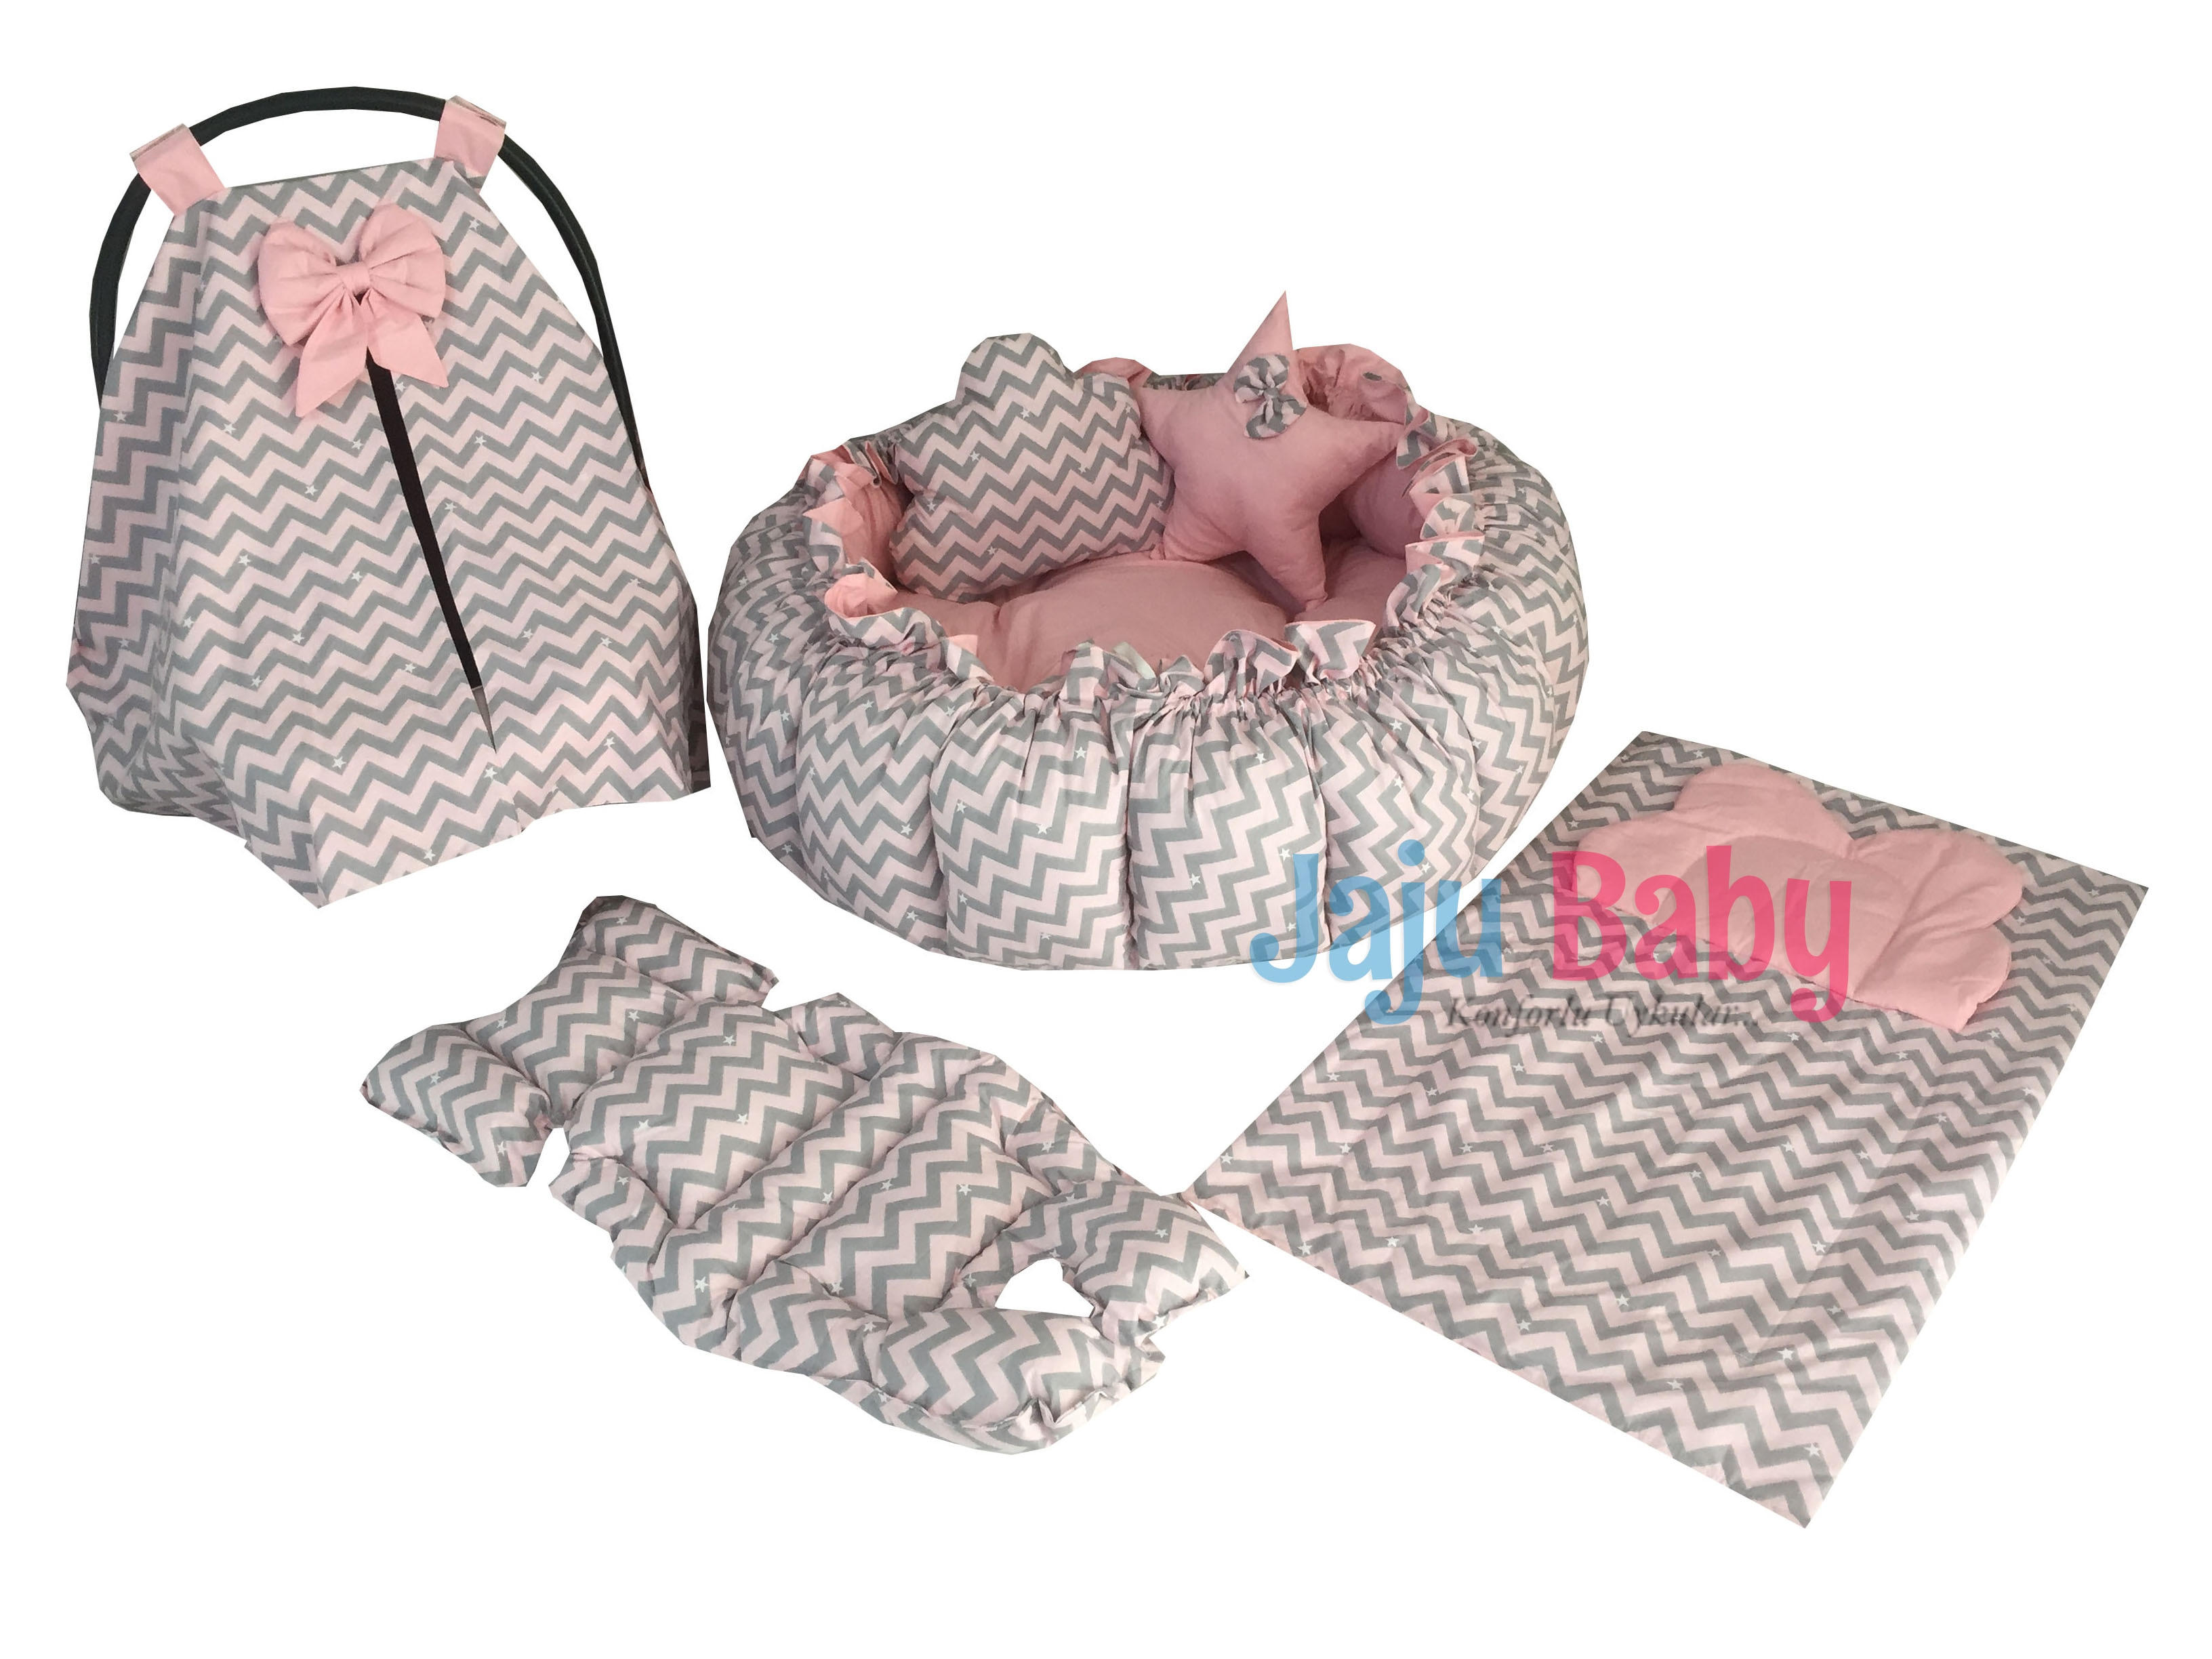 Jaju Baby Pink Gray Patterned Set Design Luxury Play Mat Babynest , Maternal Baby Bed, Retractable Play Mat